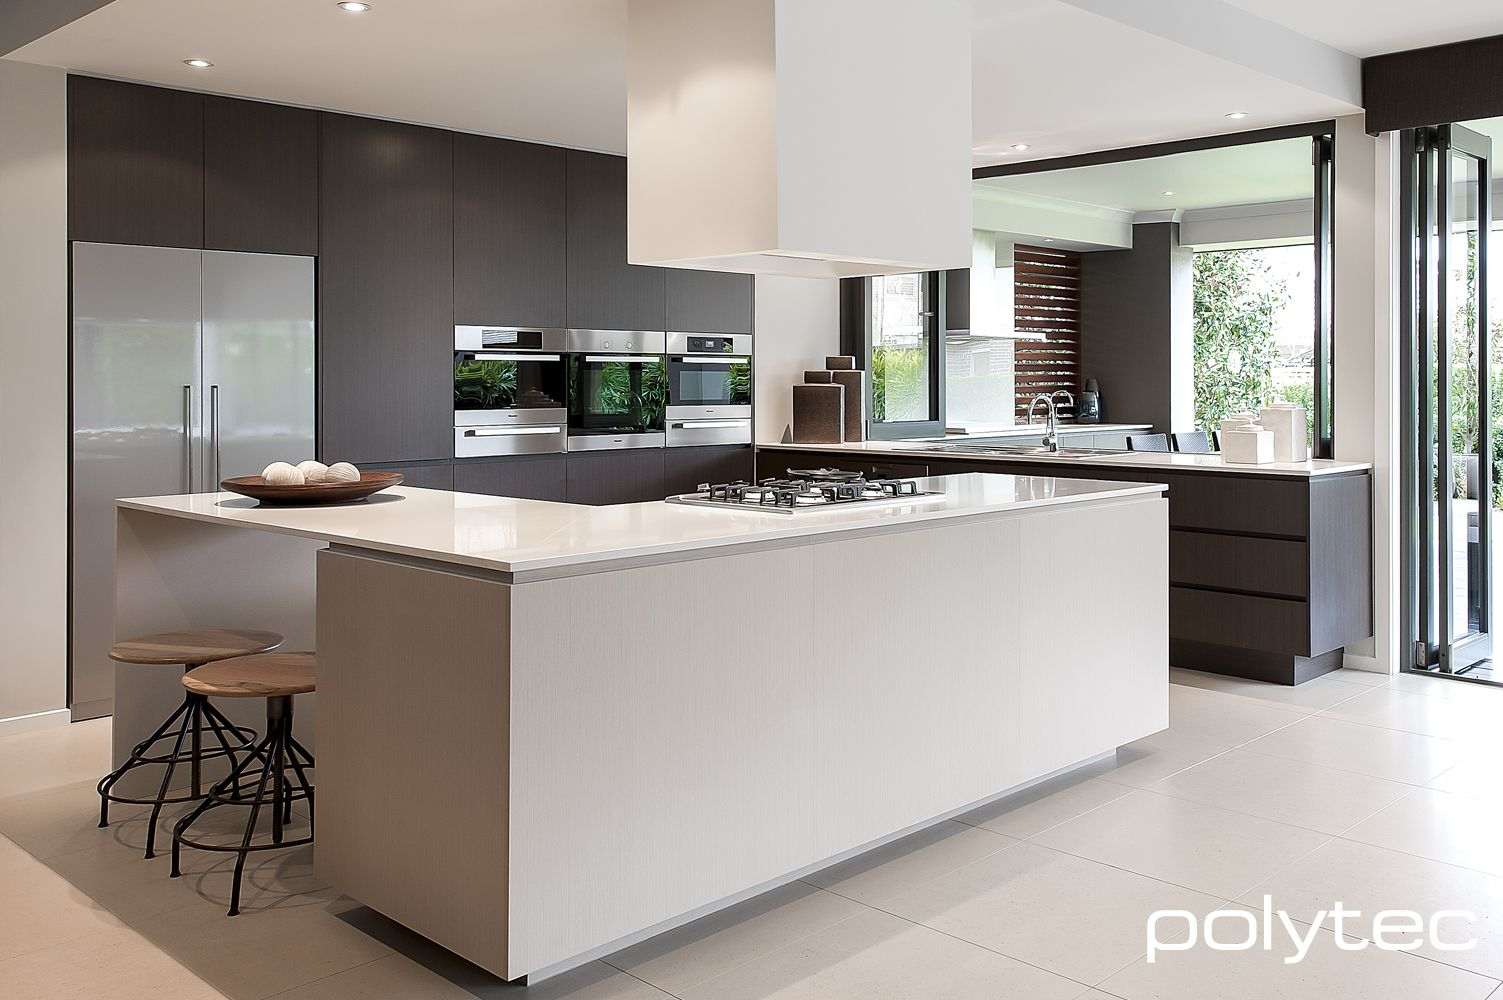 Doors and drawers in polytec melamine truffle lini for Melamine kitchen designs